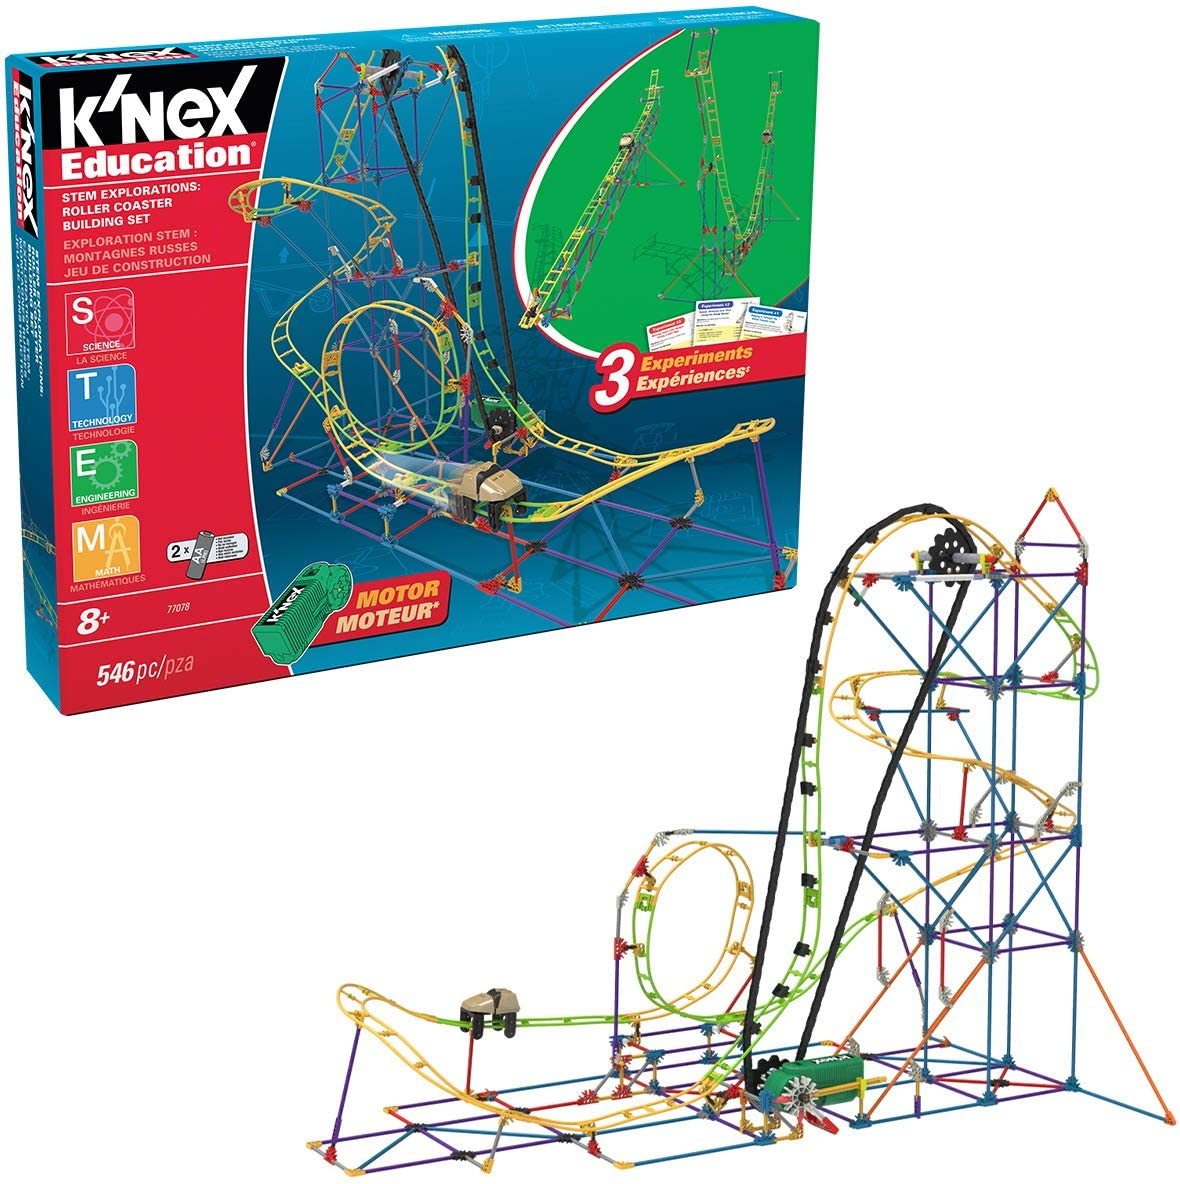 Amazon Com K Nex Education Stem Explorations Roller Coaster Building Set 546 Pieces Ages 8 Construction Education Toy Toys Games